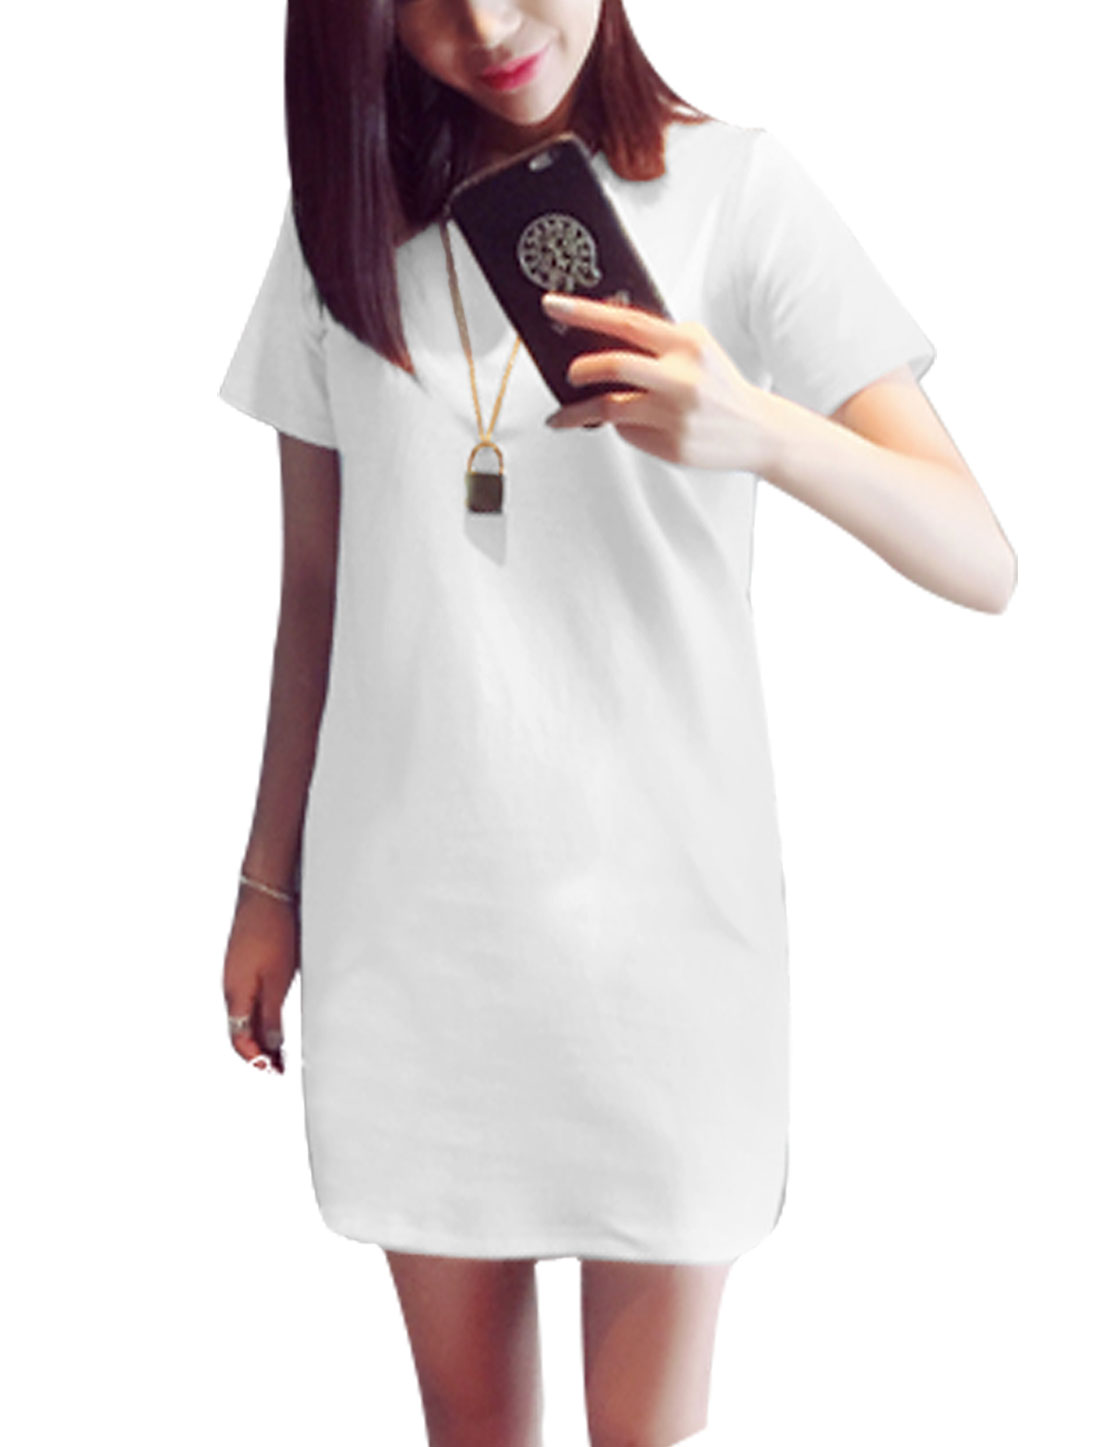 Ladies Round Neck Short Sleeves Casual Shift Dresses White S